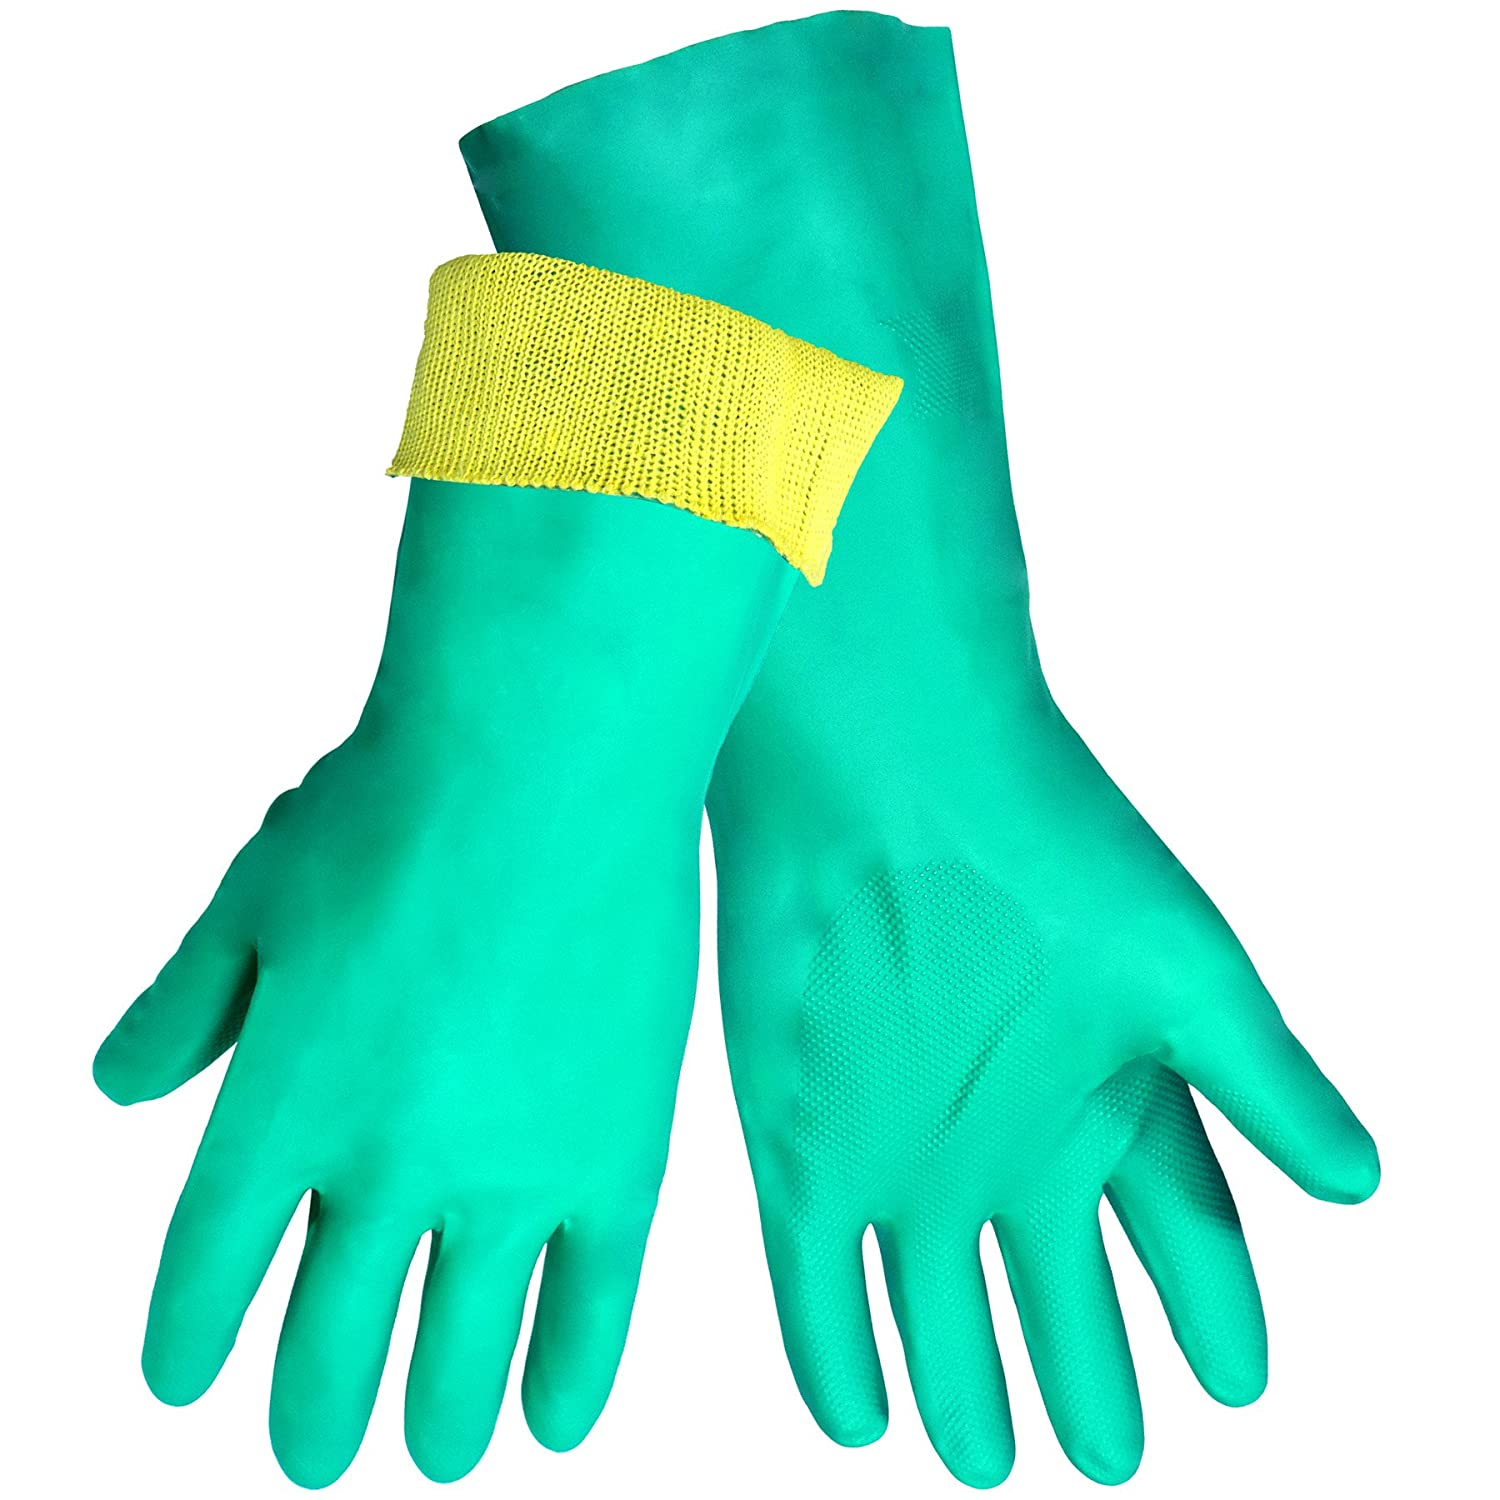 Global Glove 515KEV Unsupported Nitrile Glove with Kevlar Liner, Cut Resistant, 8-Medium (Case of 72) by Global Glove B00AIZ663W